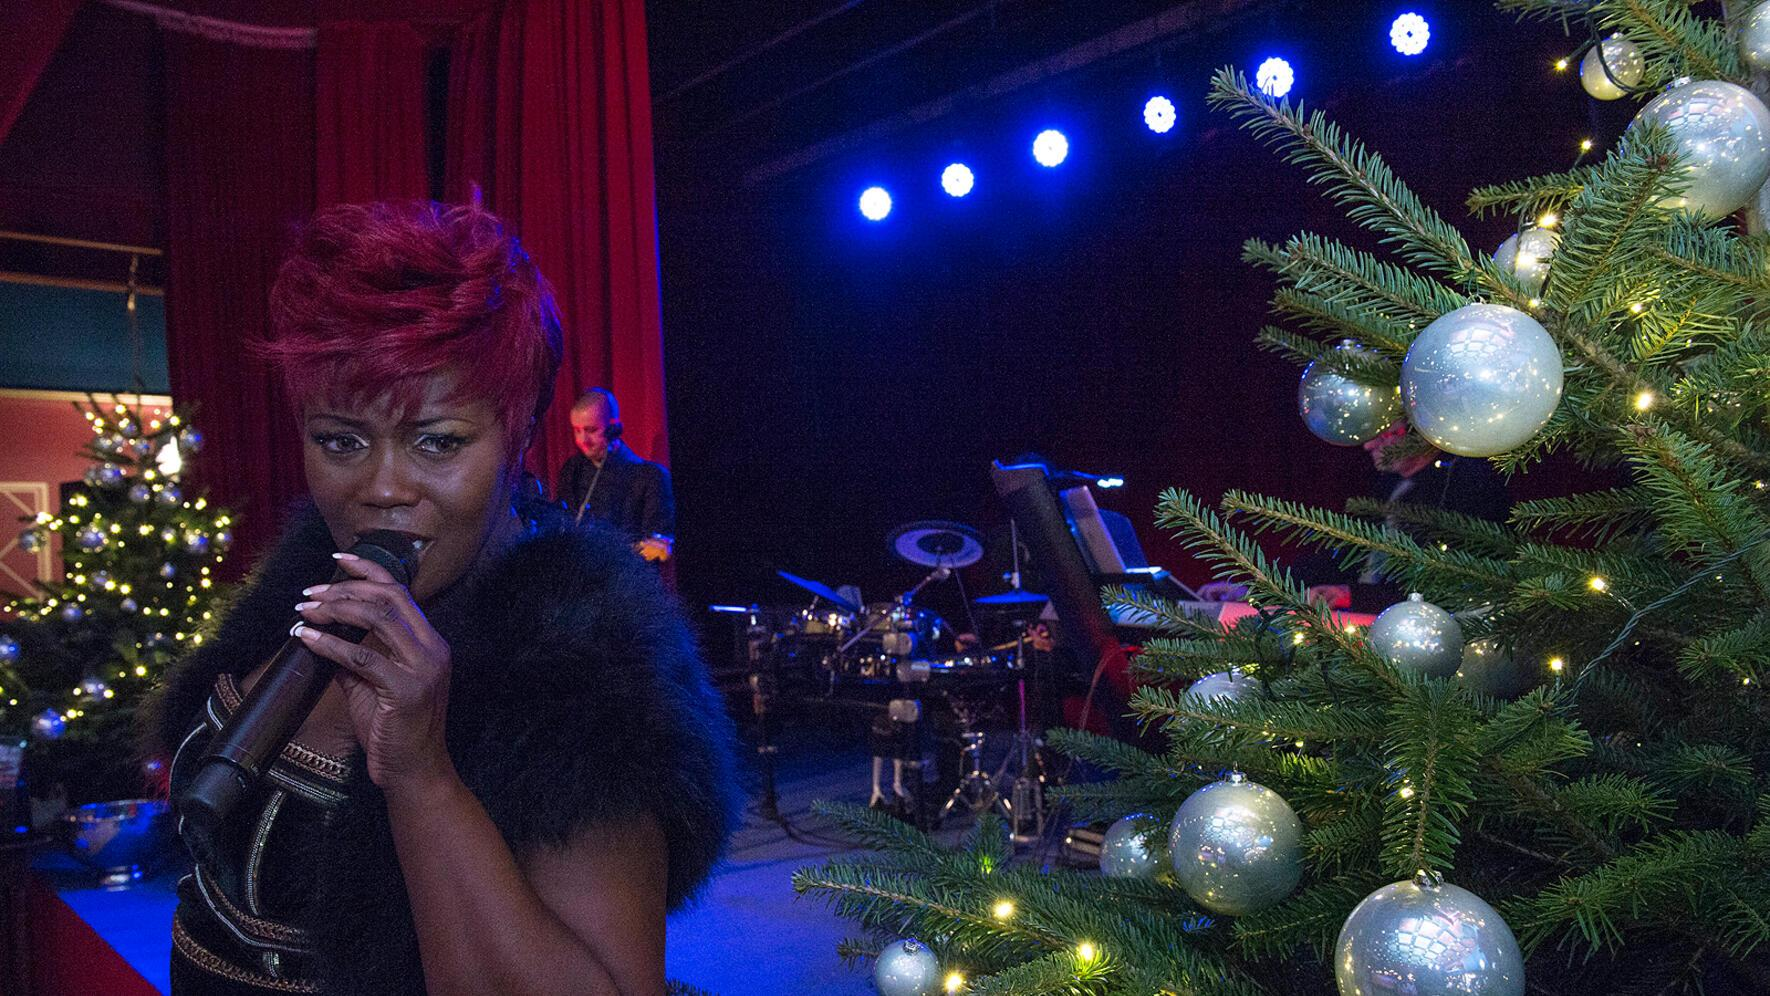 Christmas Tree Charity Gala in St. Moritz